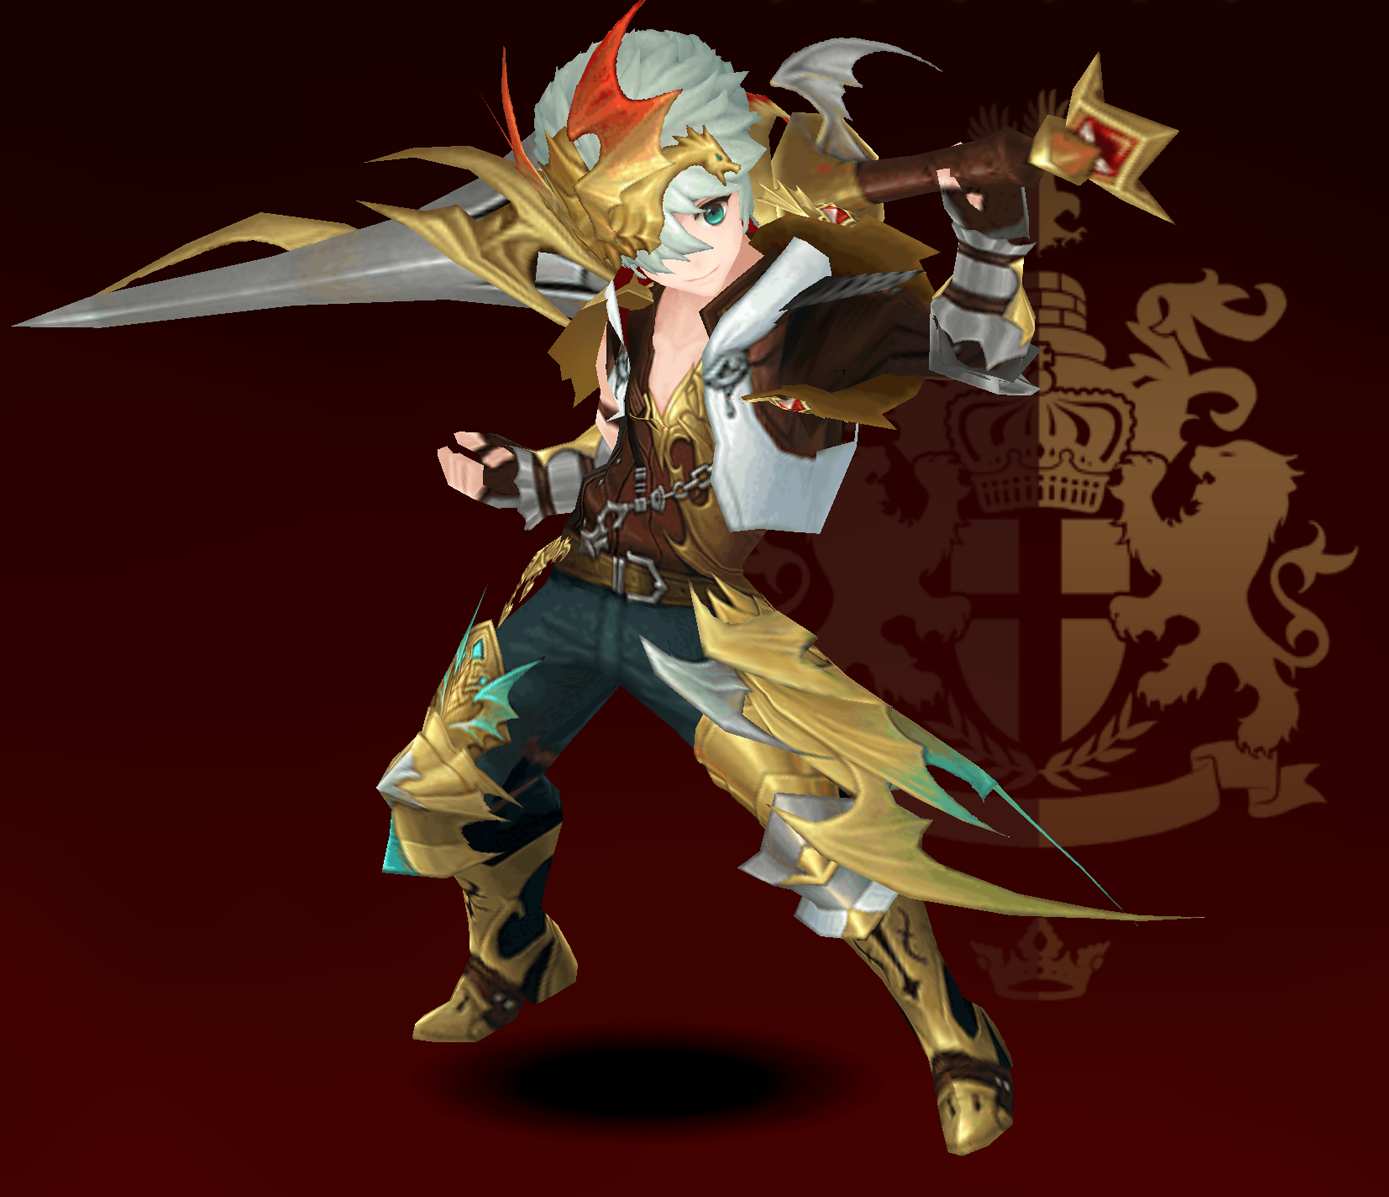 Guardian Dragon Jave | Seven Knights Wiki | FANDOM powered by Wikia